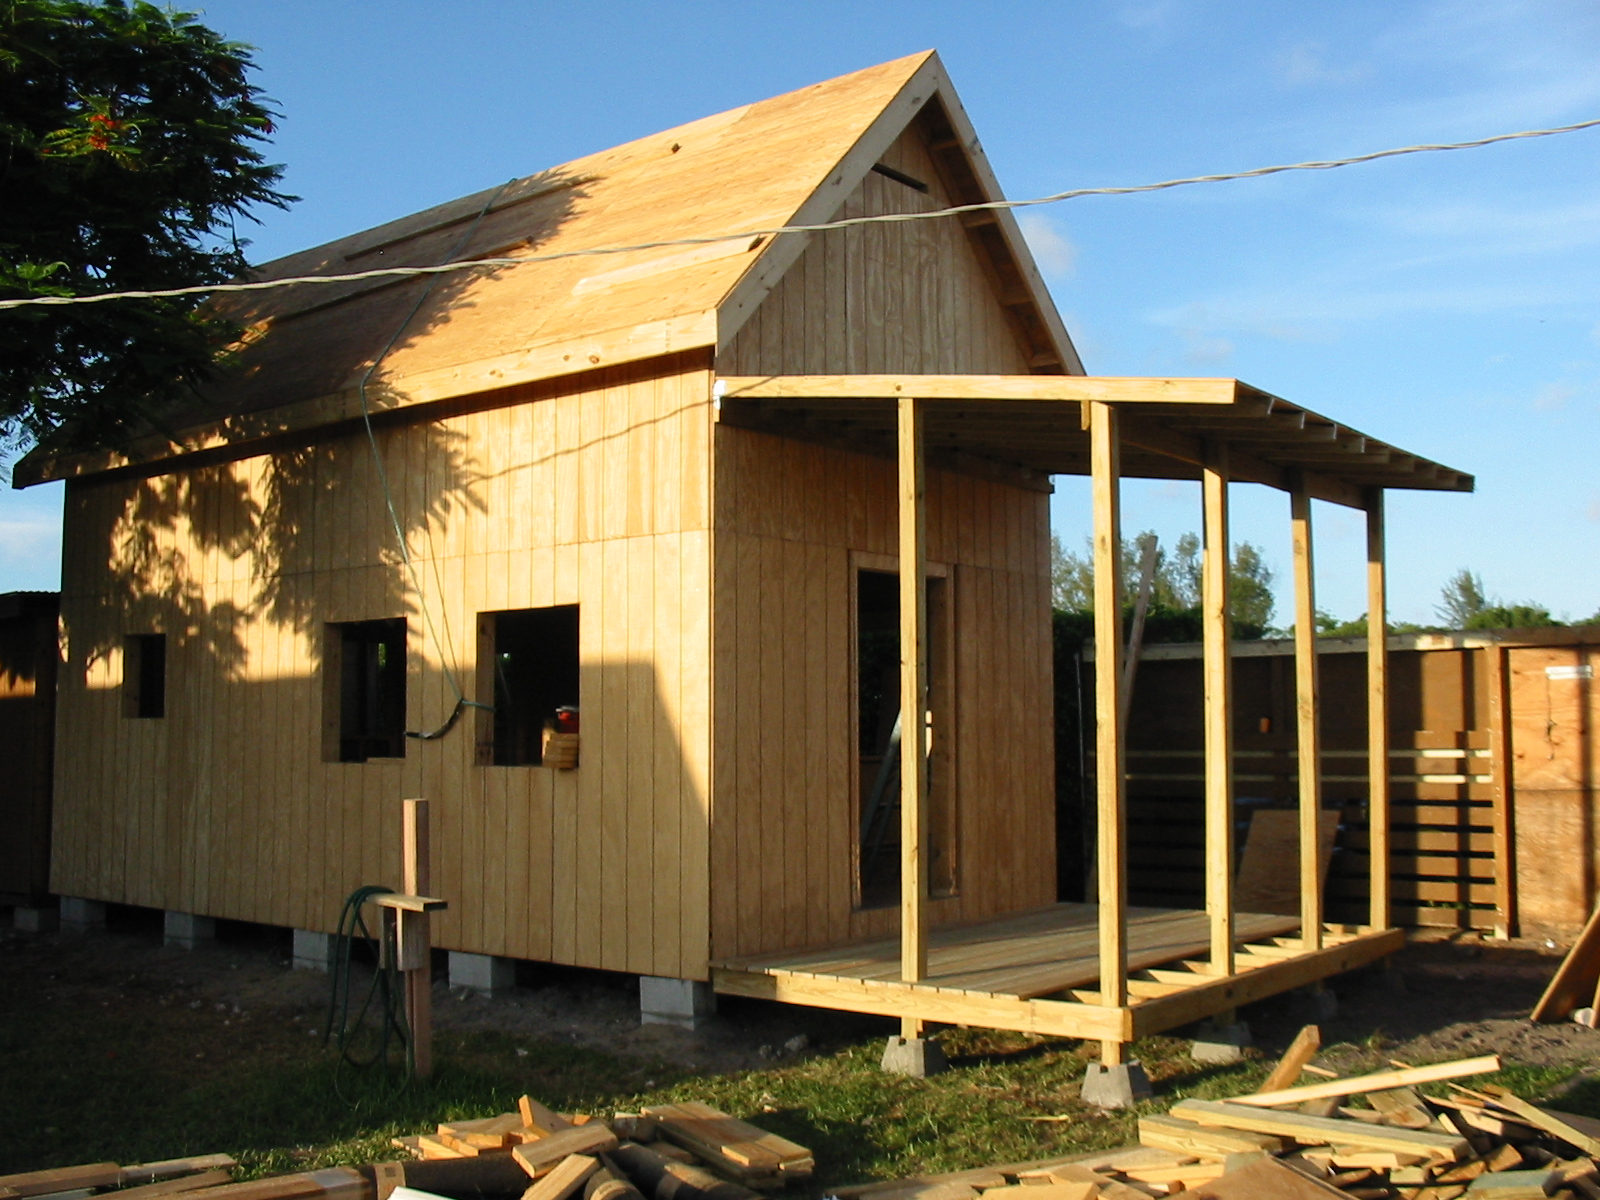 Keith is Building the 12×24 Homesteader's Cabin